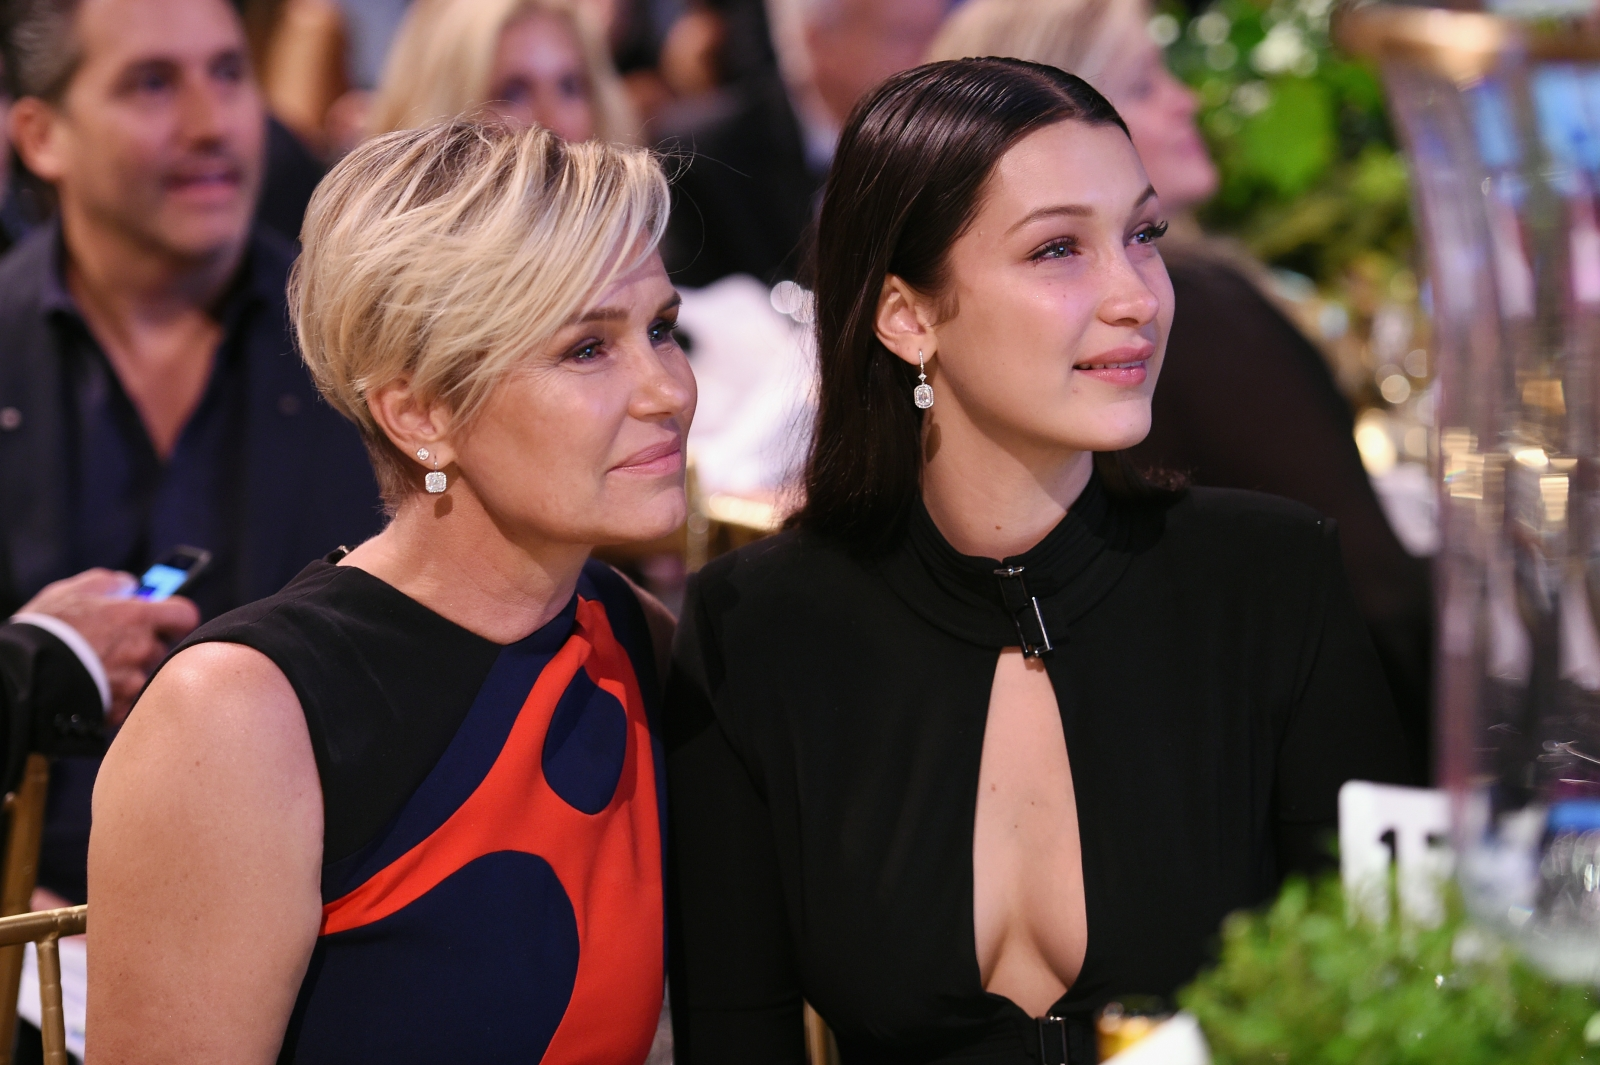 Bella Hadid and Yolanda Hadid